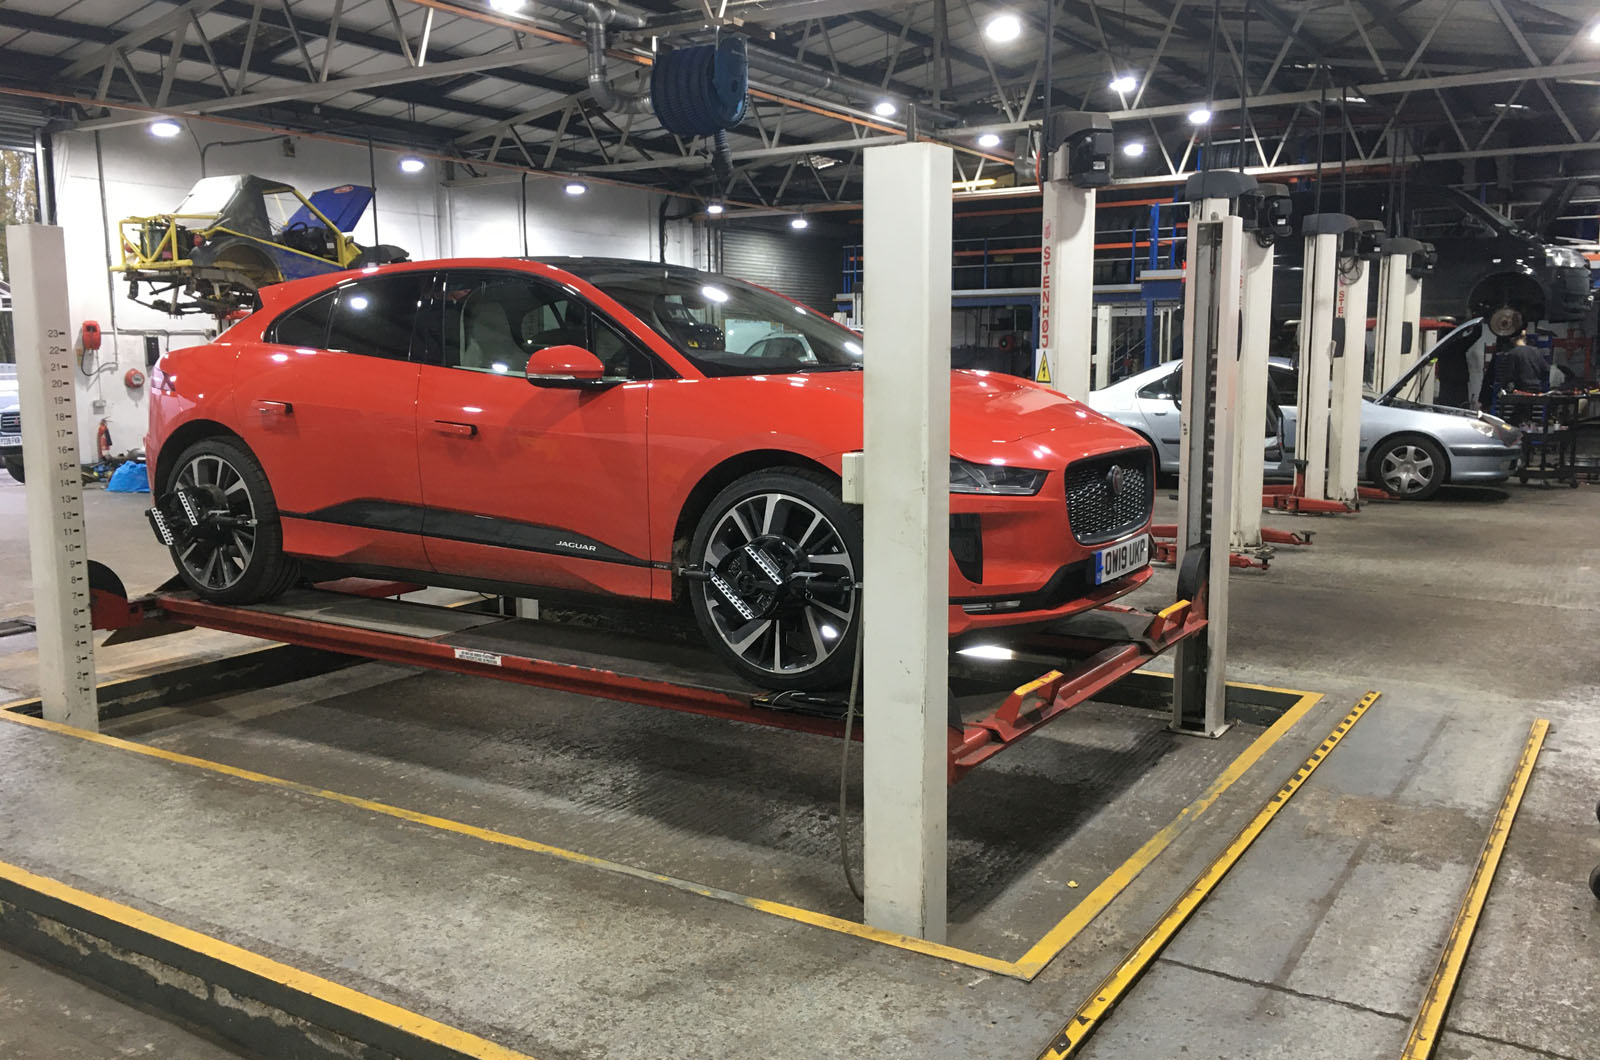 Jaguar EV at a specialised service garage